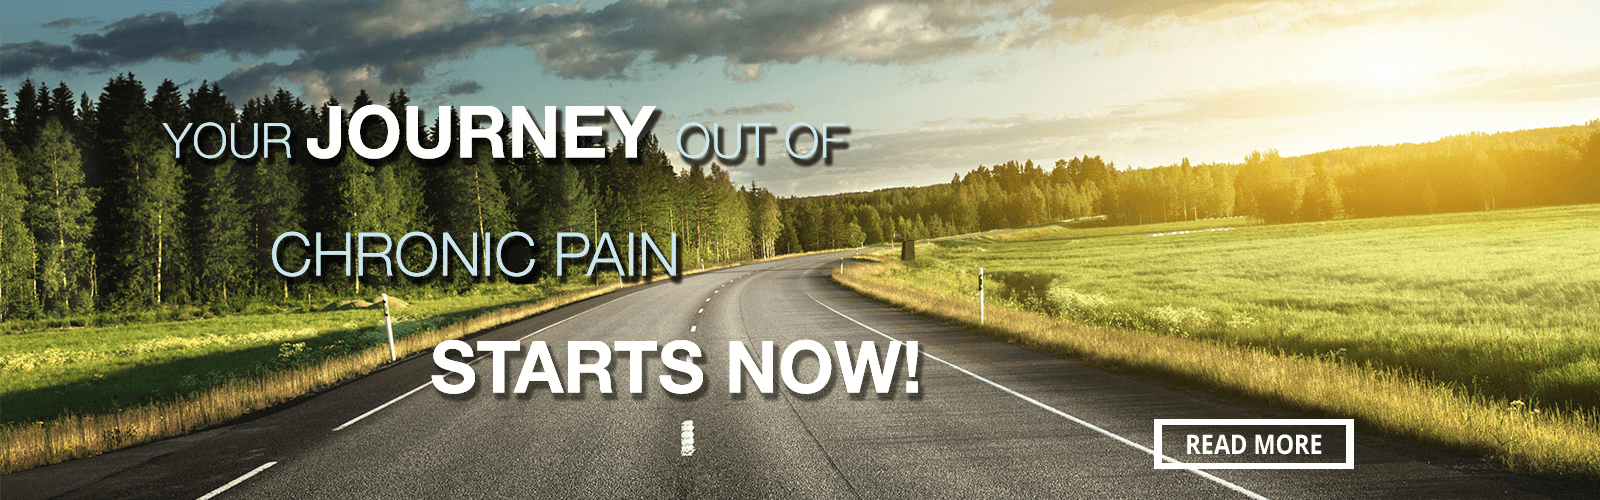 The Road Back Foundation and chronic pain recommendations